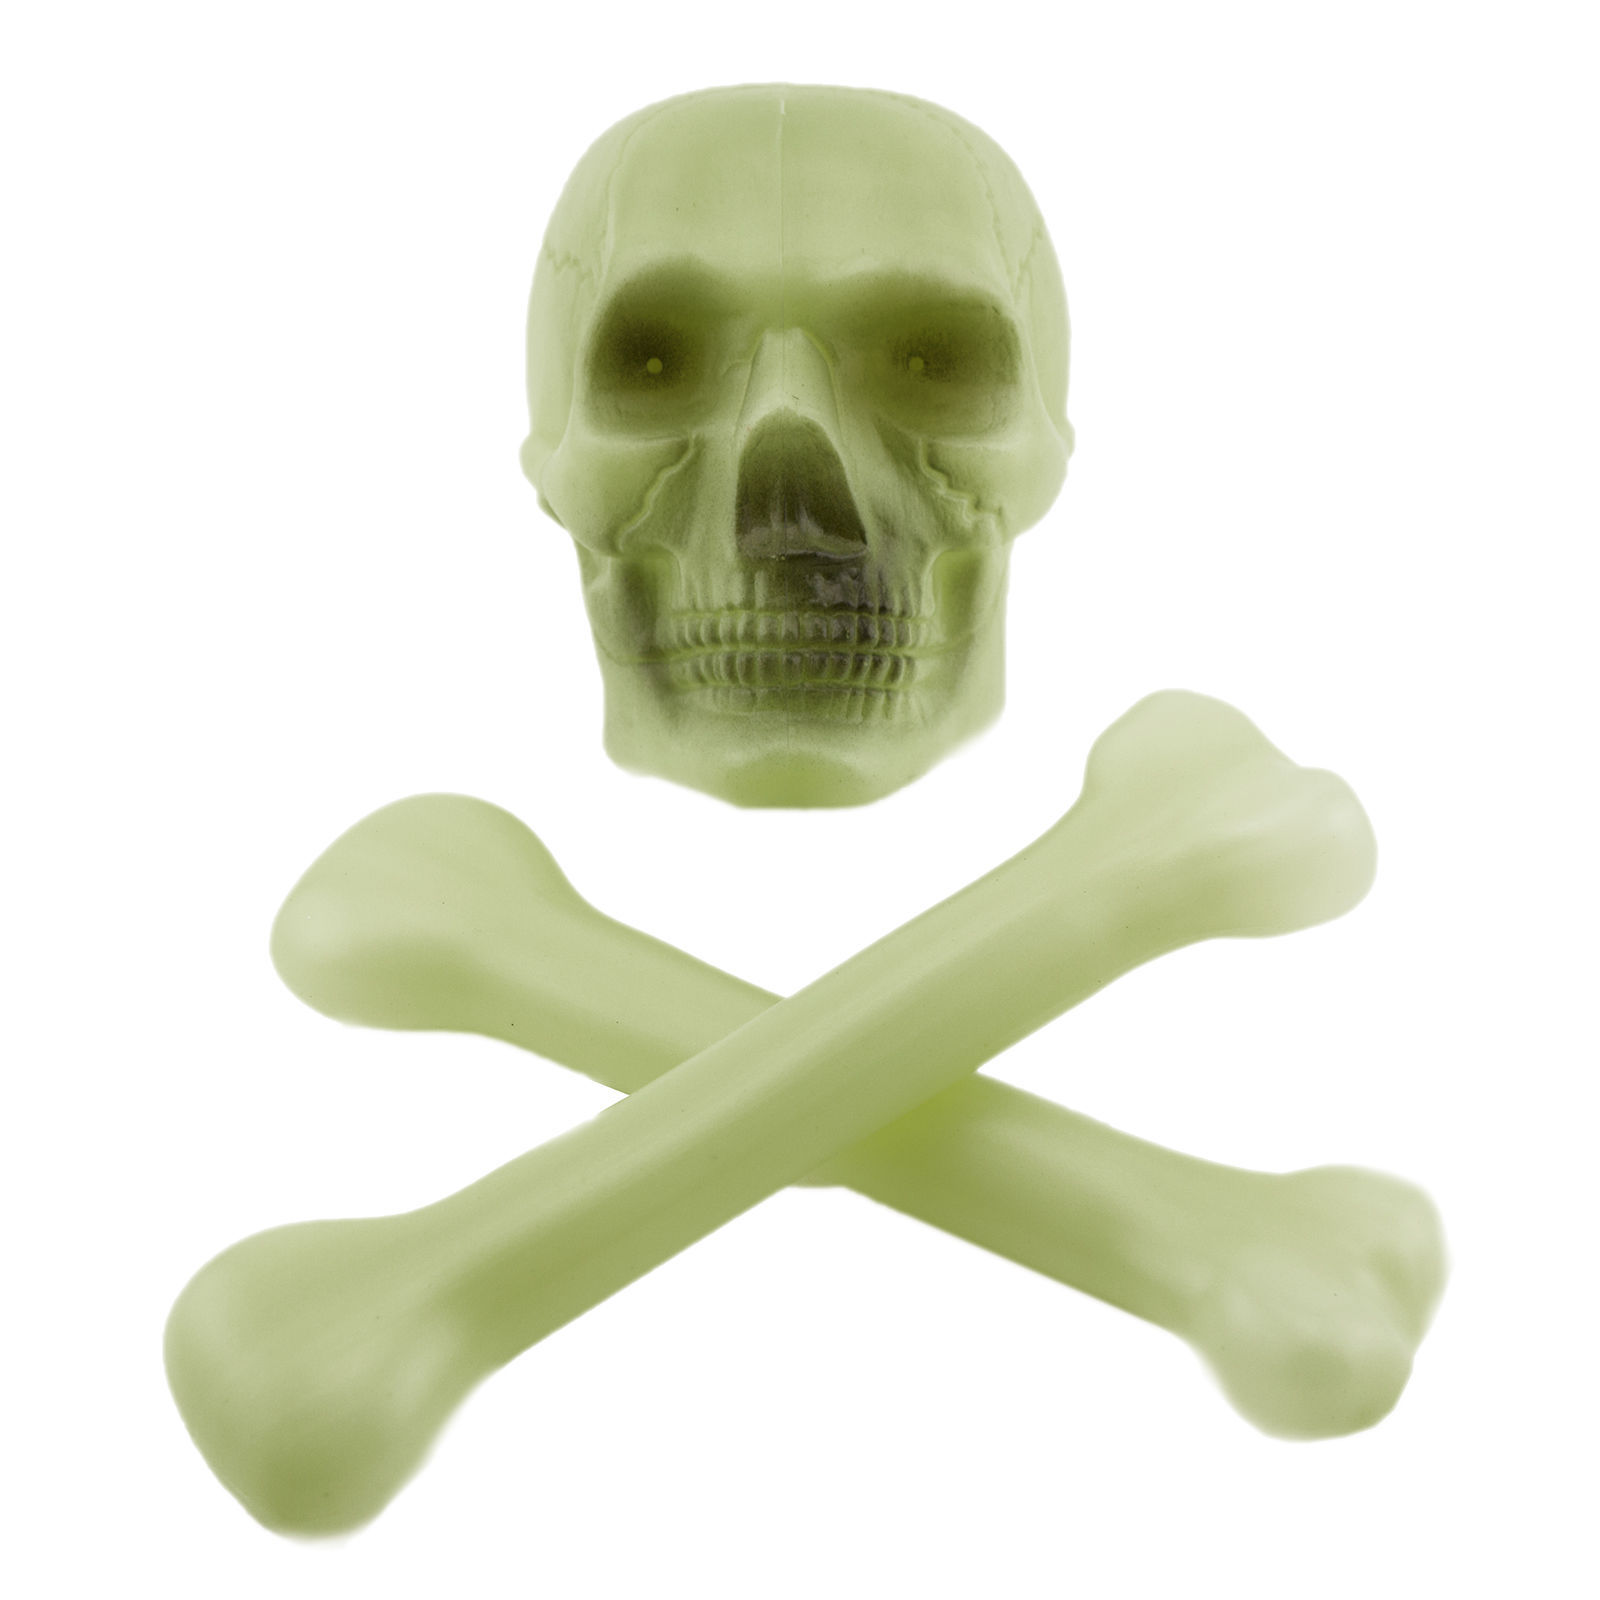 Plastic Glow in the Dark Skull and Cross Bones Halloween Skeleton Decoration Set